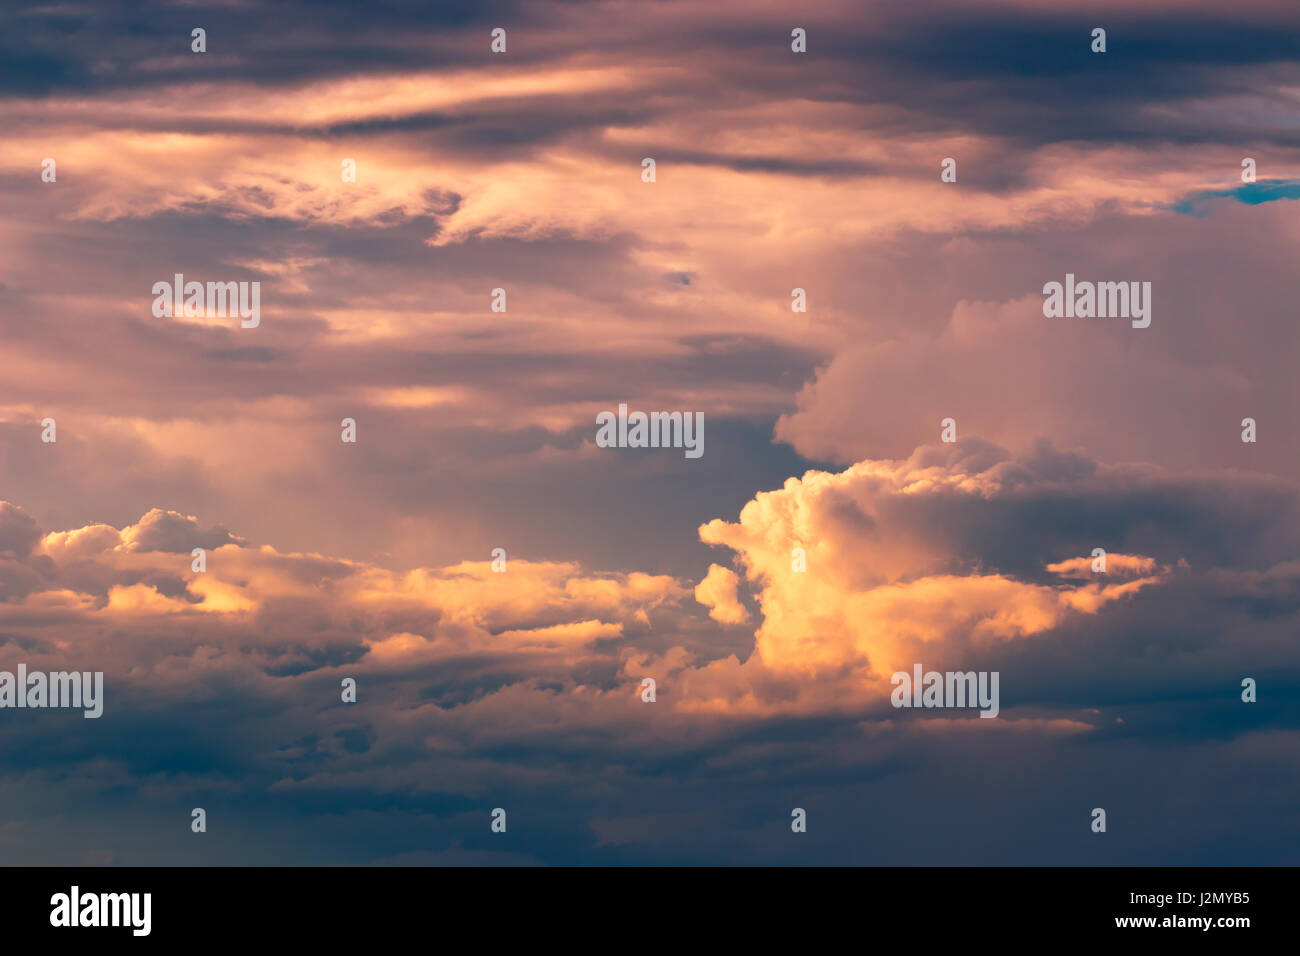 Orange fluffy patches of clouds against deep blue sky at sunset, color enhanced - Stock Image